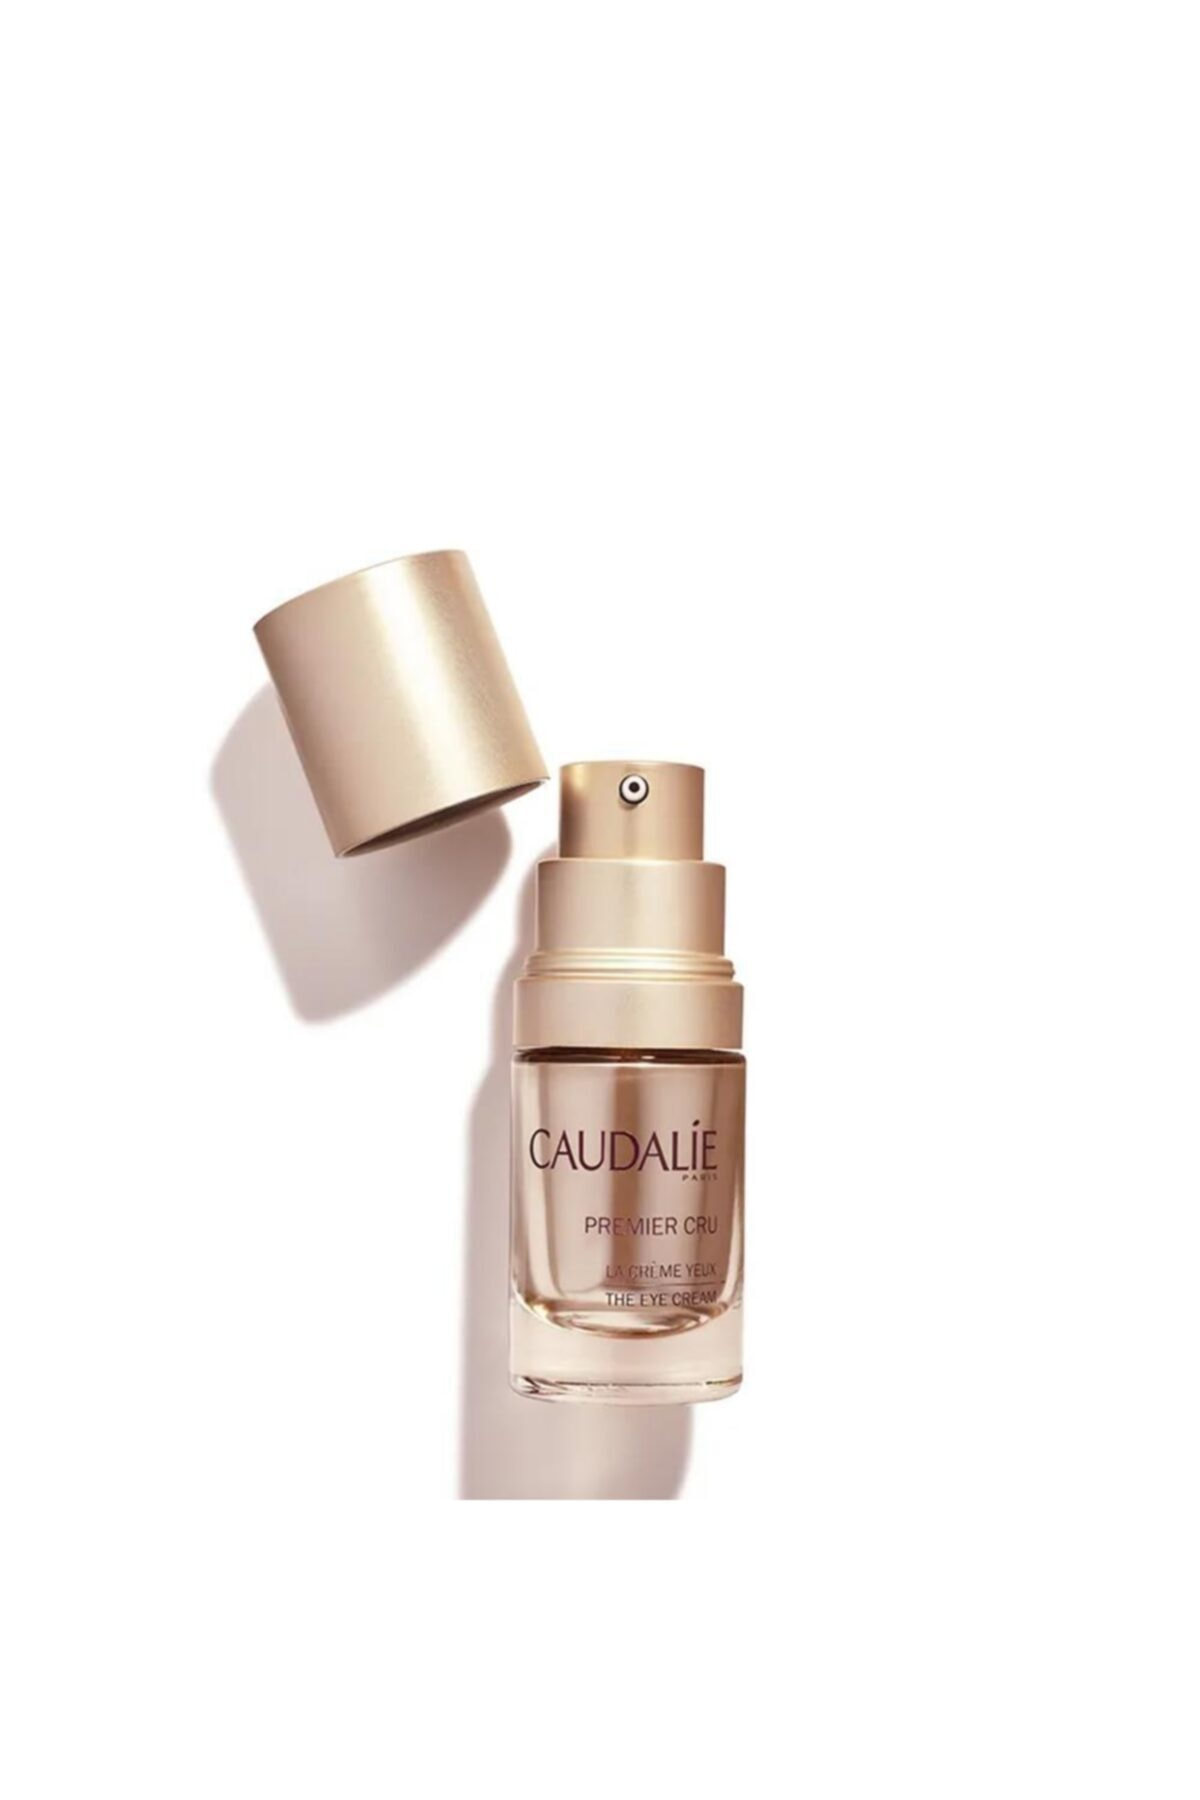 Caudalie Premıer Cru The Eye Cream Göz Çevresi Kremi 1